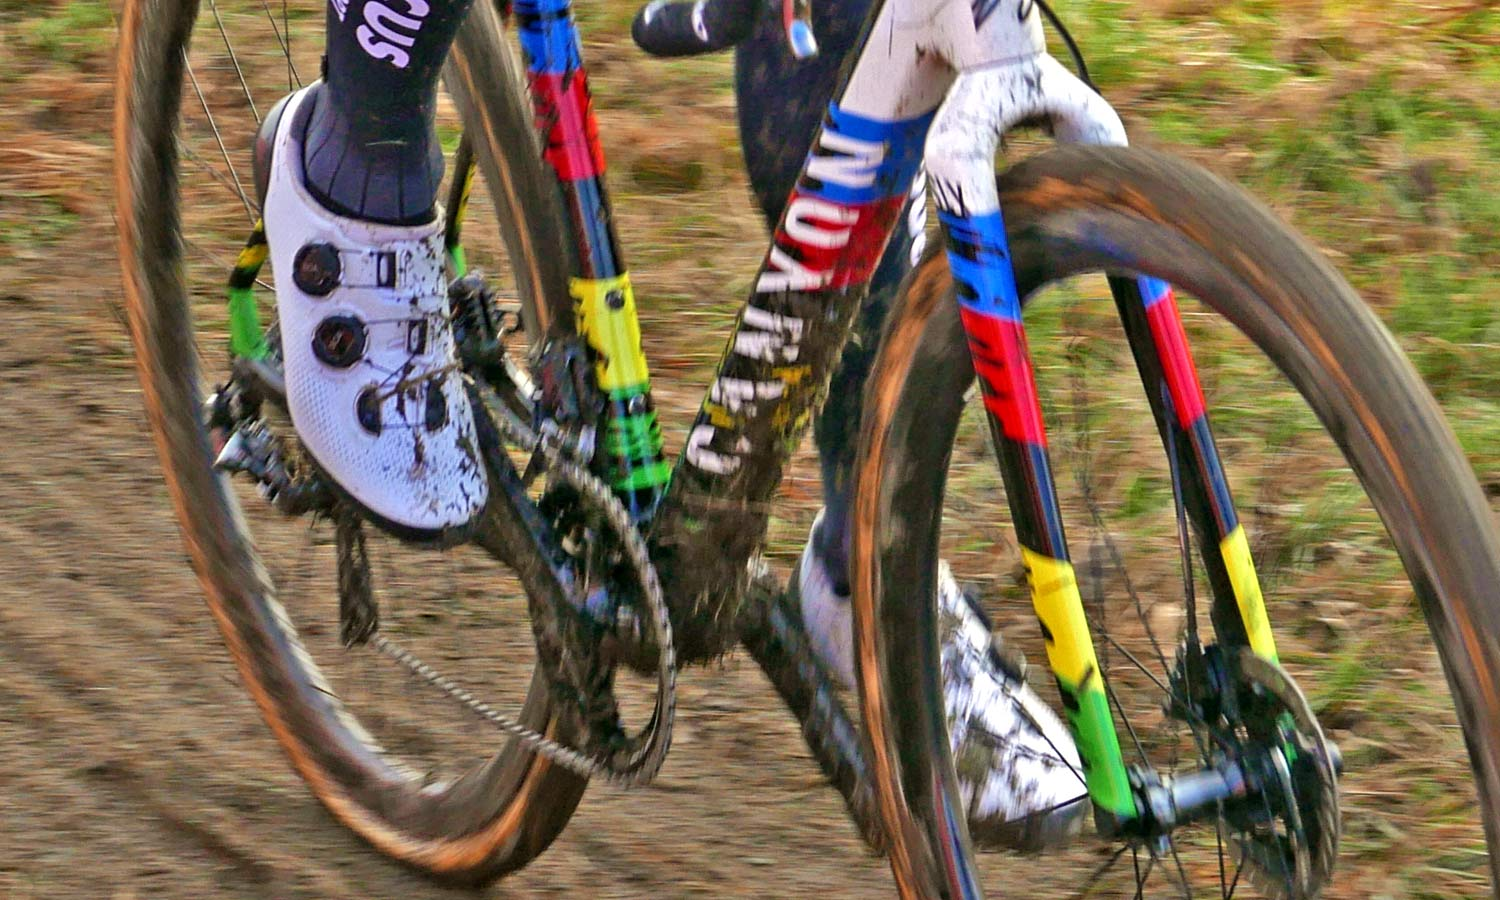 Prototype-2020-Shimano-S-Phyre-XC9-mountain-bike-shoes_Mathieu-van-der-Poel-cyclocross_CX-World-Cup-Tabor_muddy-new.jpg